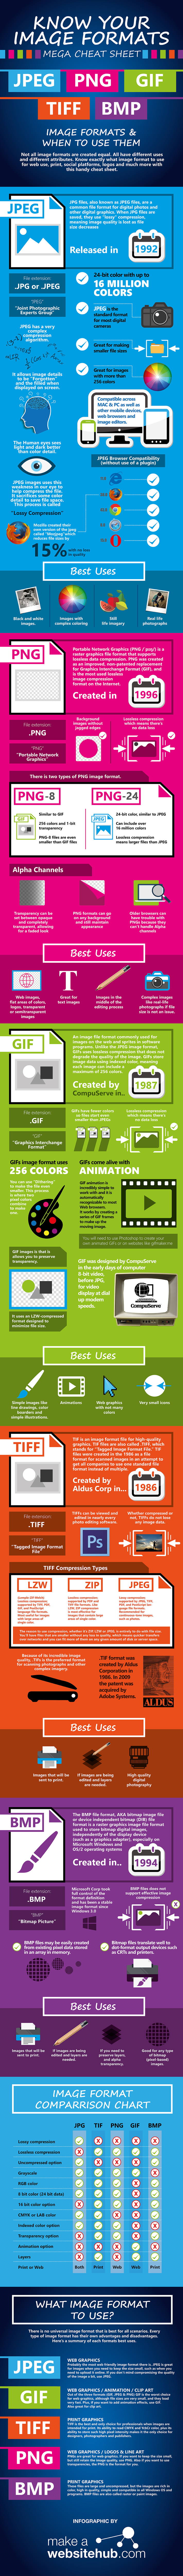 Image Formats Cheat Sheet - All you need to know about JPEGs